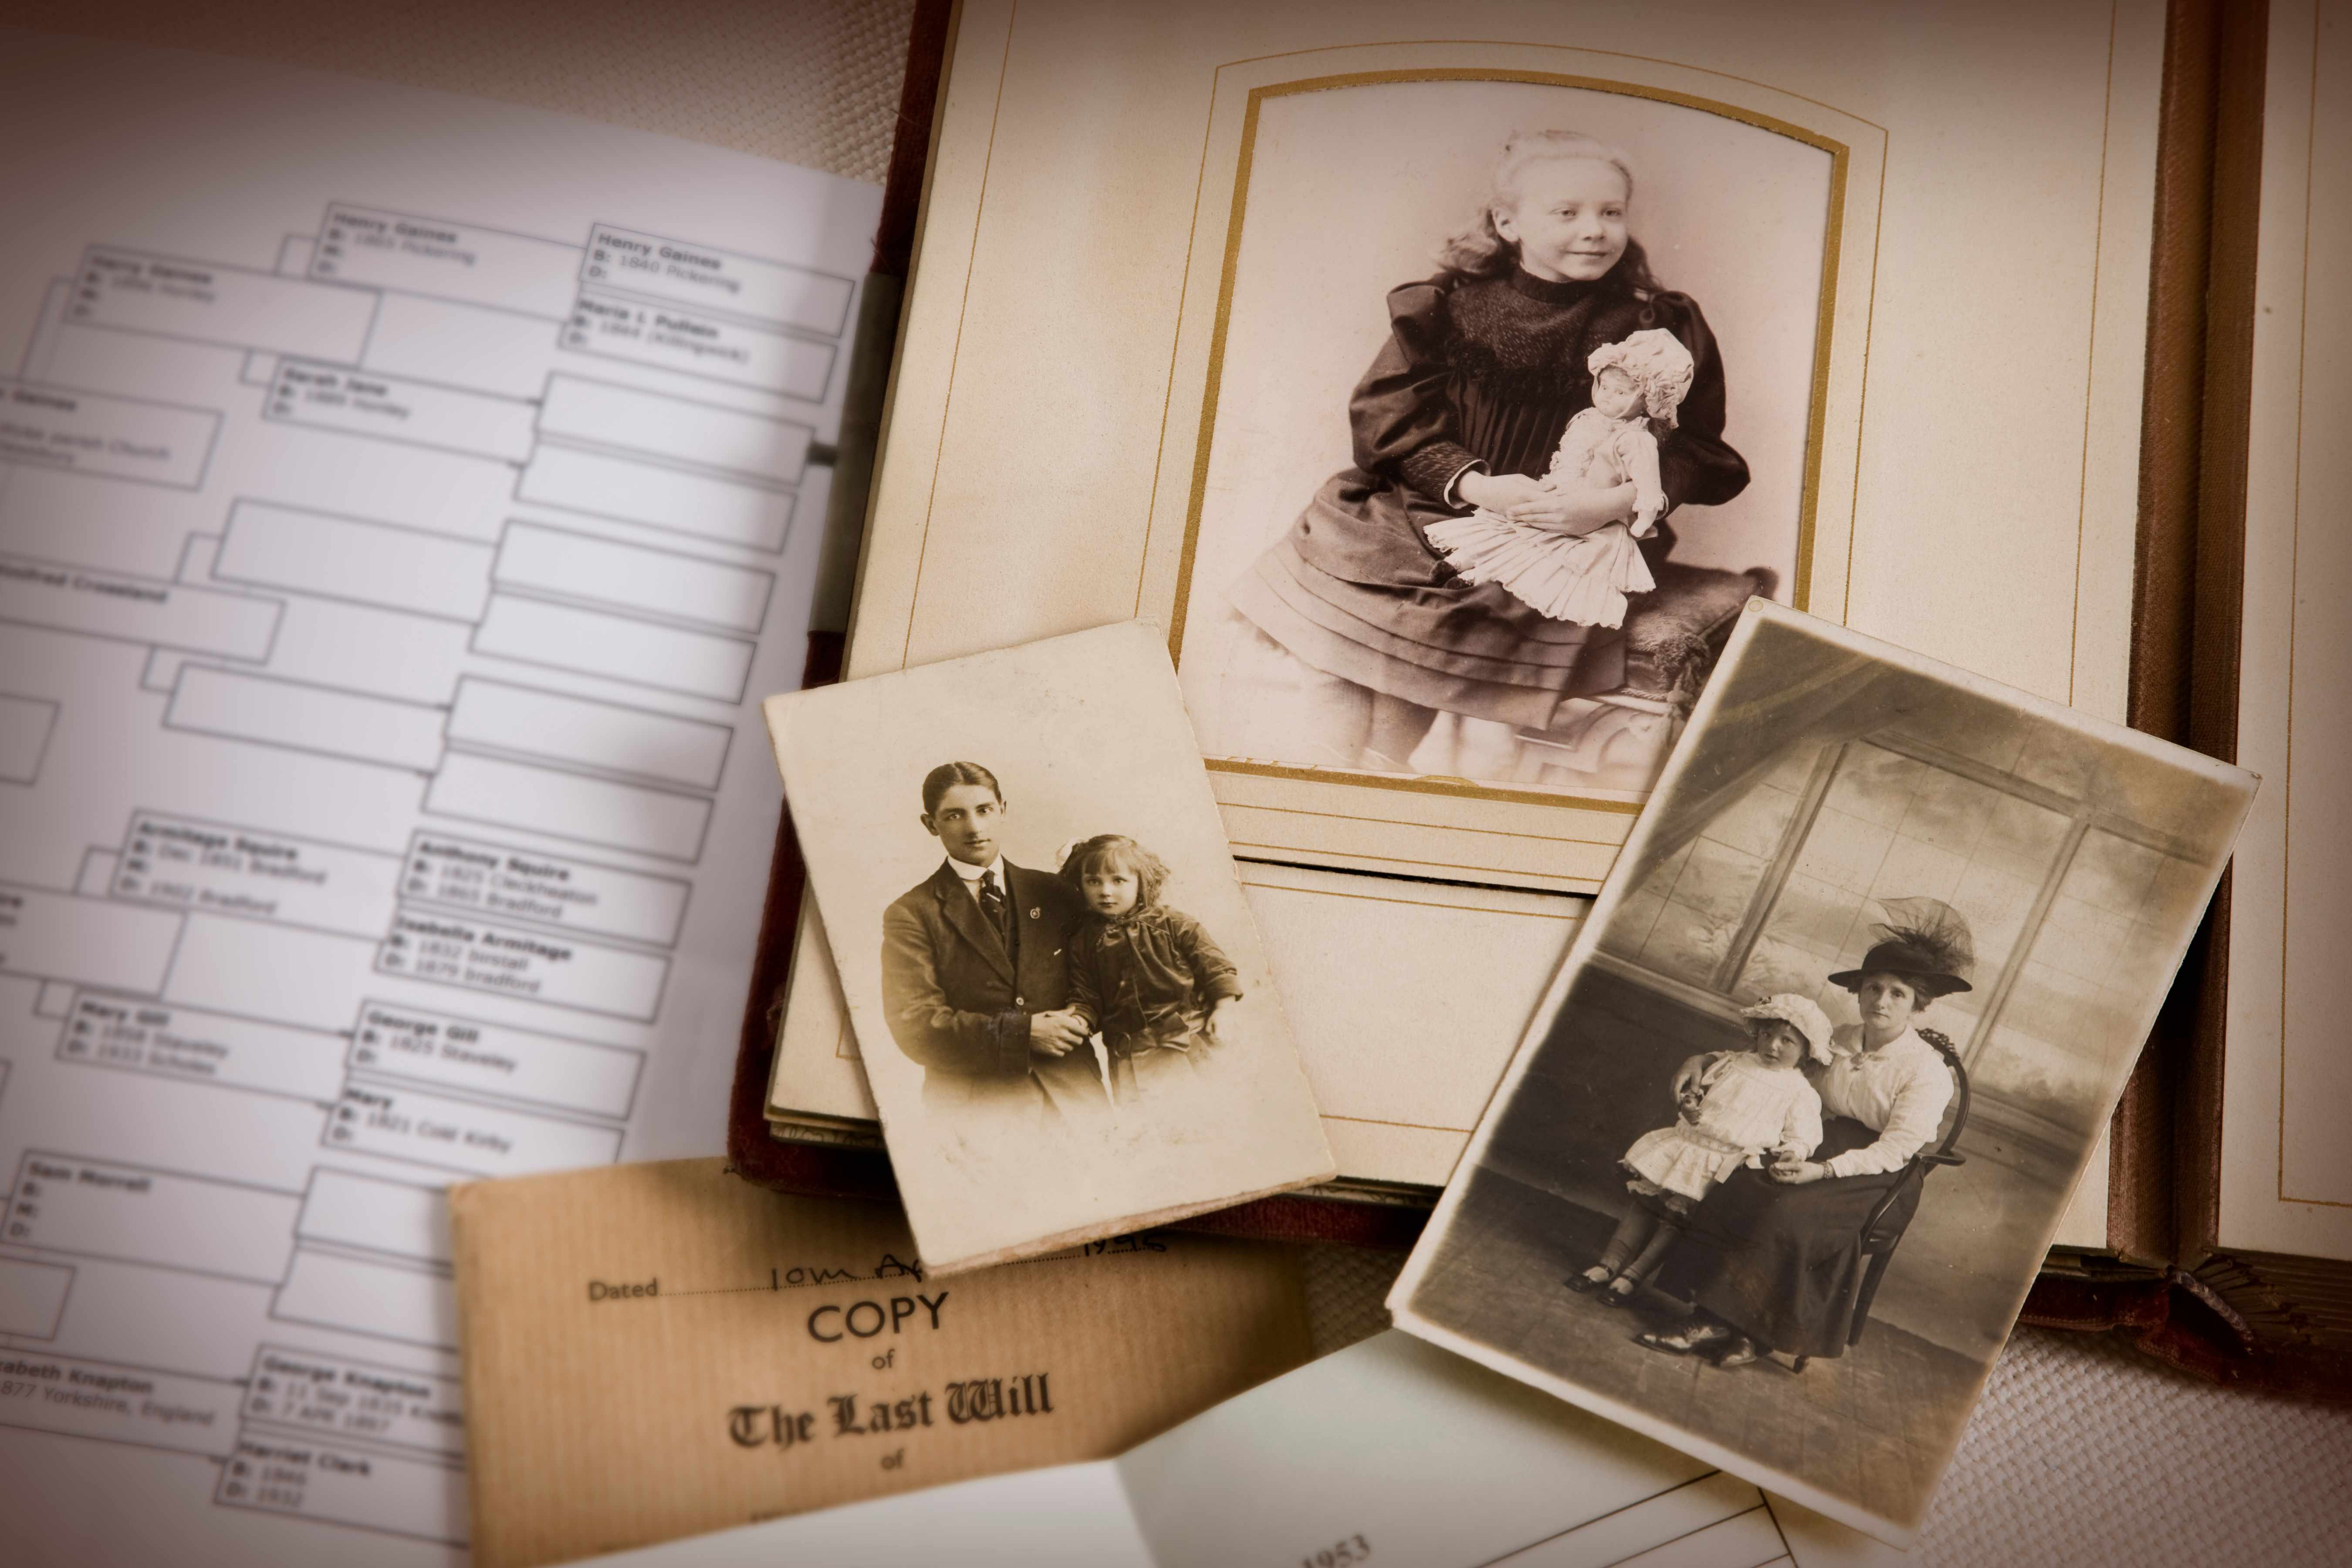 Vintage family photo album and documents. (Getty Images)